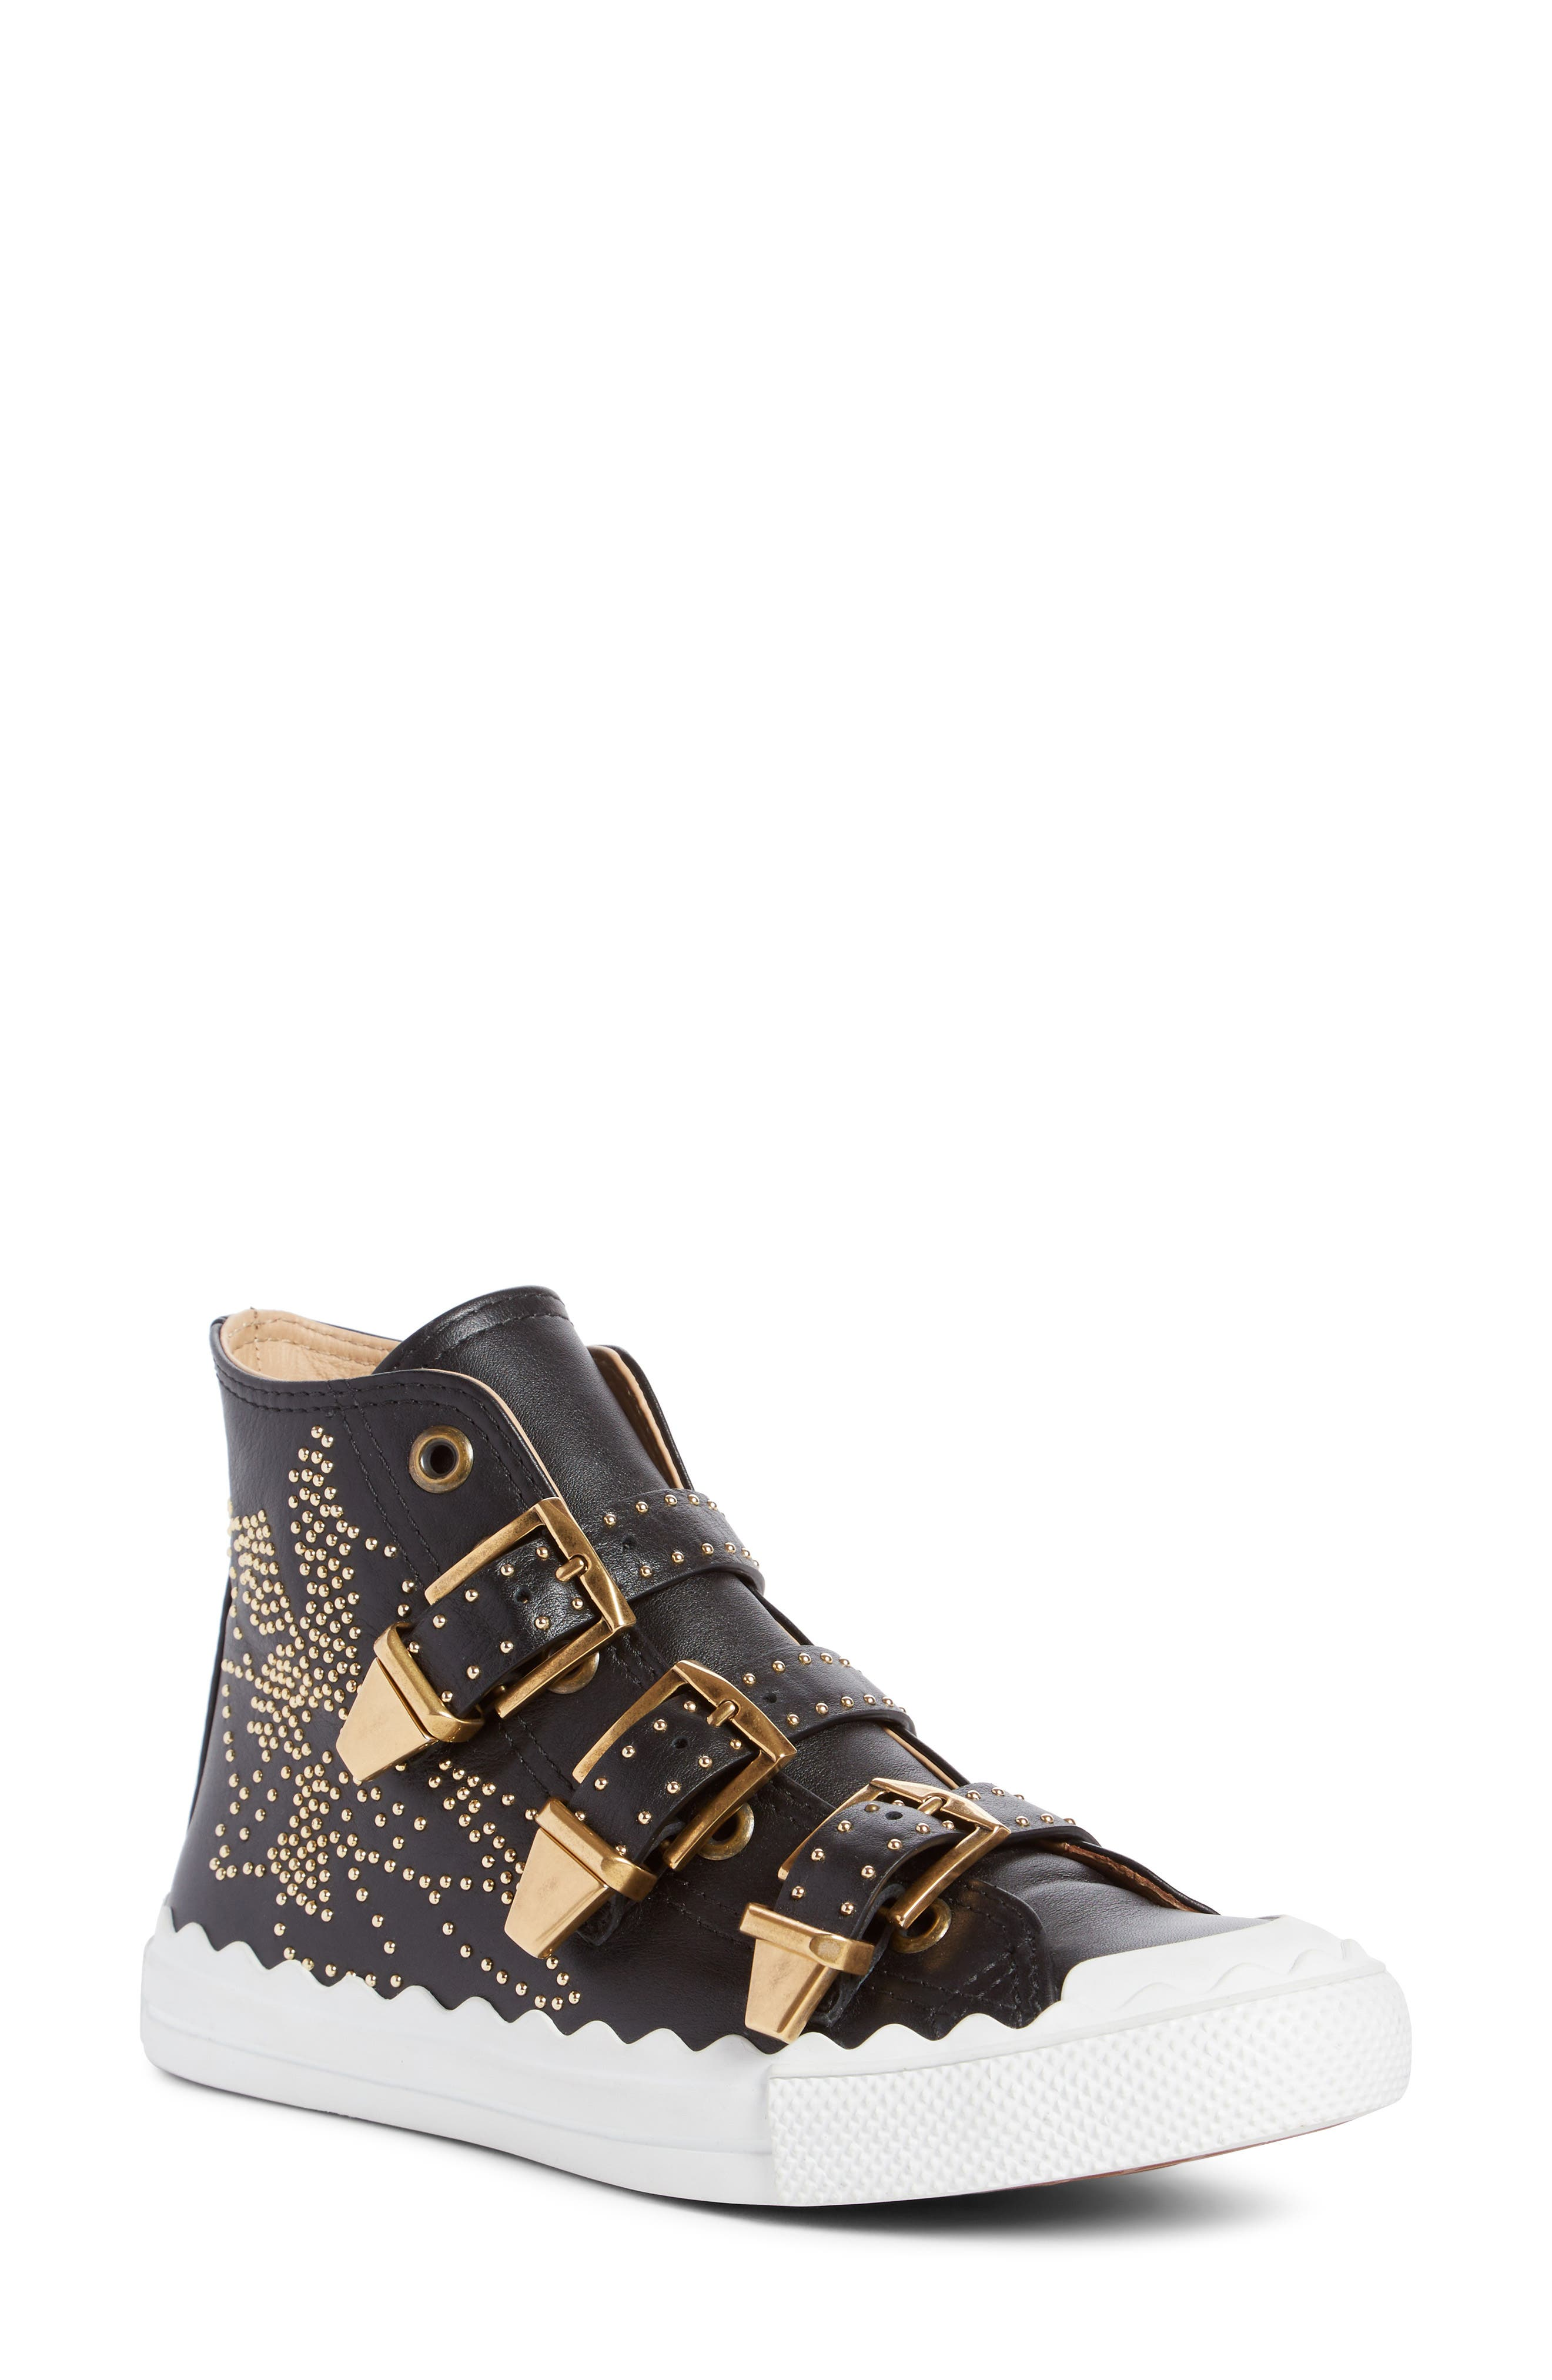 Kyle Stud Buckle High Top Sneaker,                             Main thumbnail 1, color,                             Black/ Gold